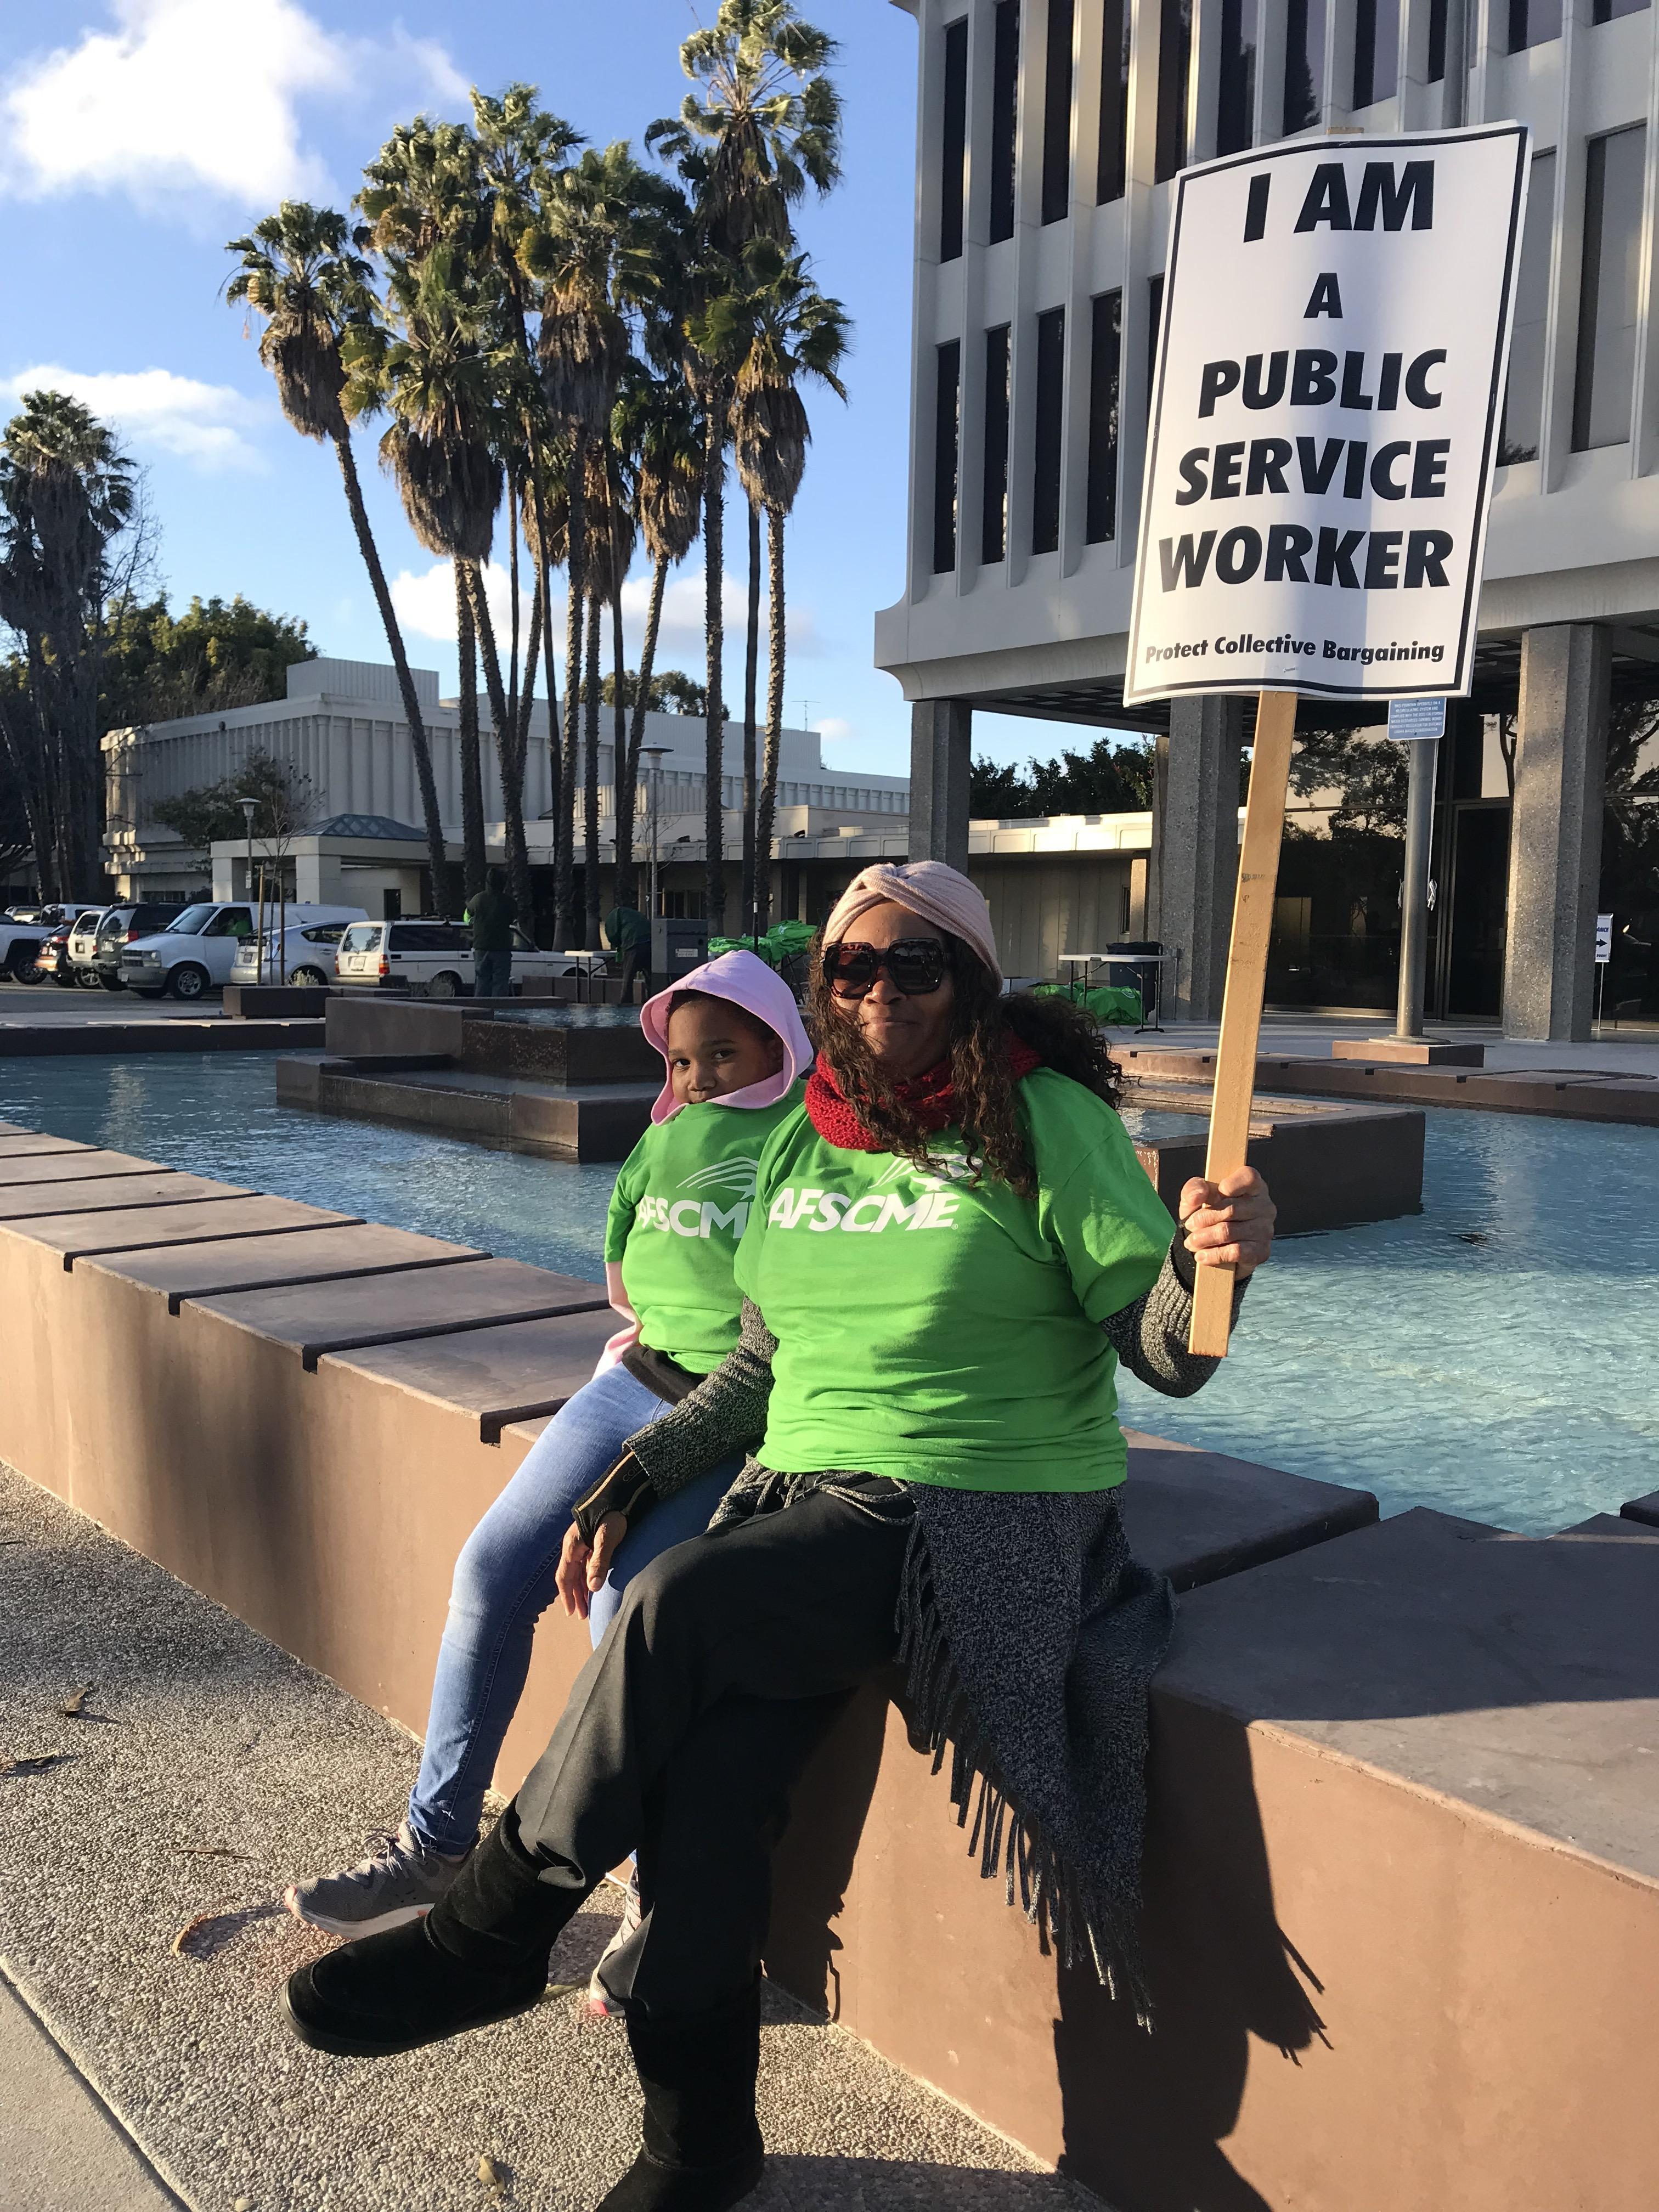 Local 1117 Fights for a Fair Contract